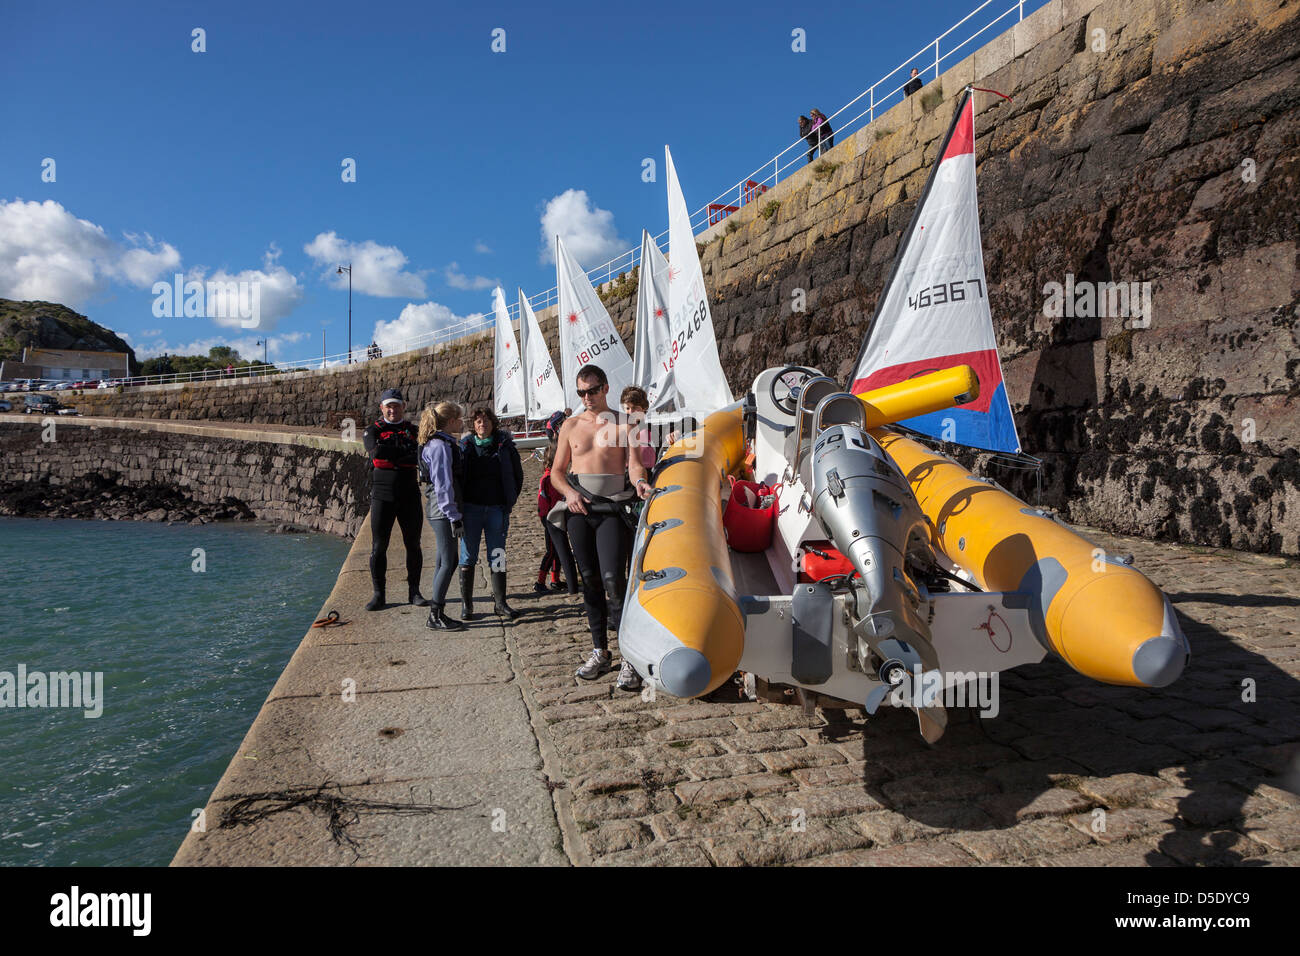 Launching inflatable outboard boat, St Catherine's breakwater, Jersey, Channel Islands, UK - Stock Image